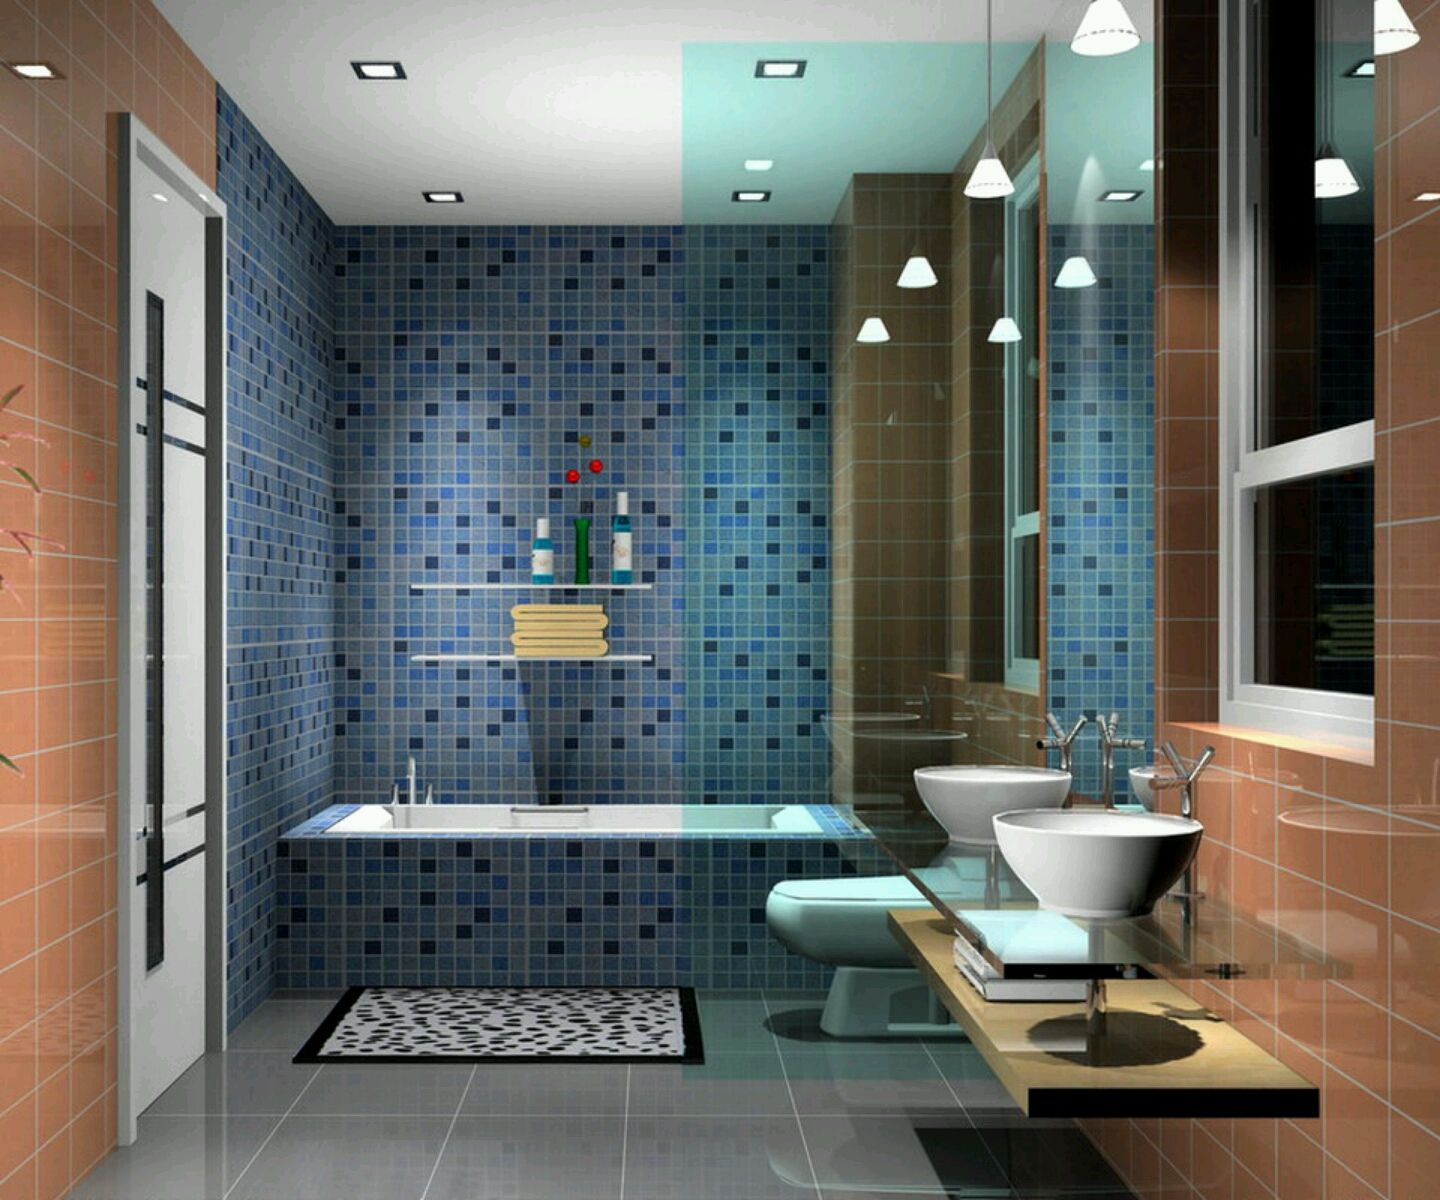 stunning-small-modern-bathroom-ideas-wallmounted-soap-case-blue-tile ...